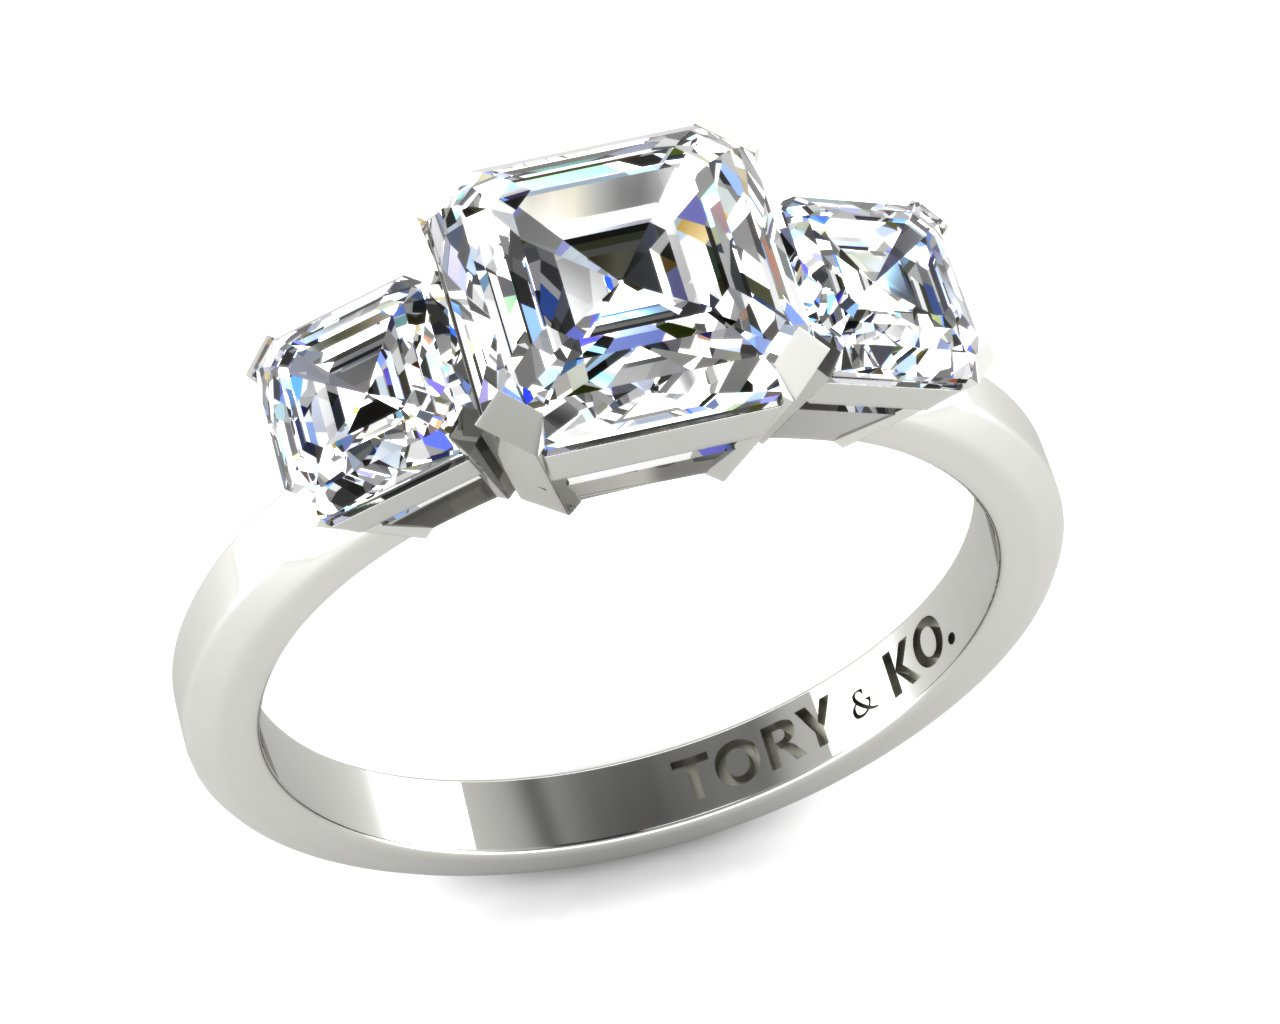 Charlotte Diamond Engagement Ring by TORY and KO.jpg